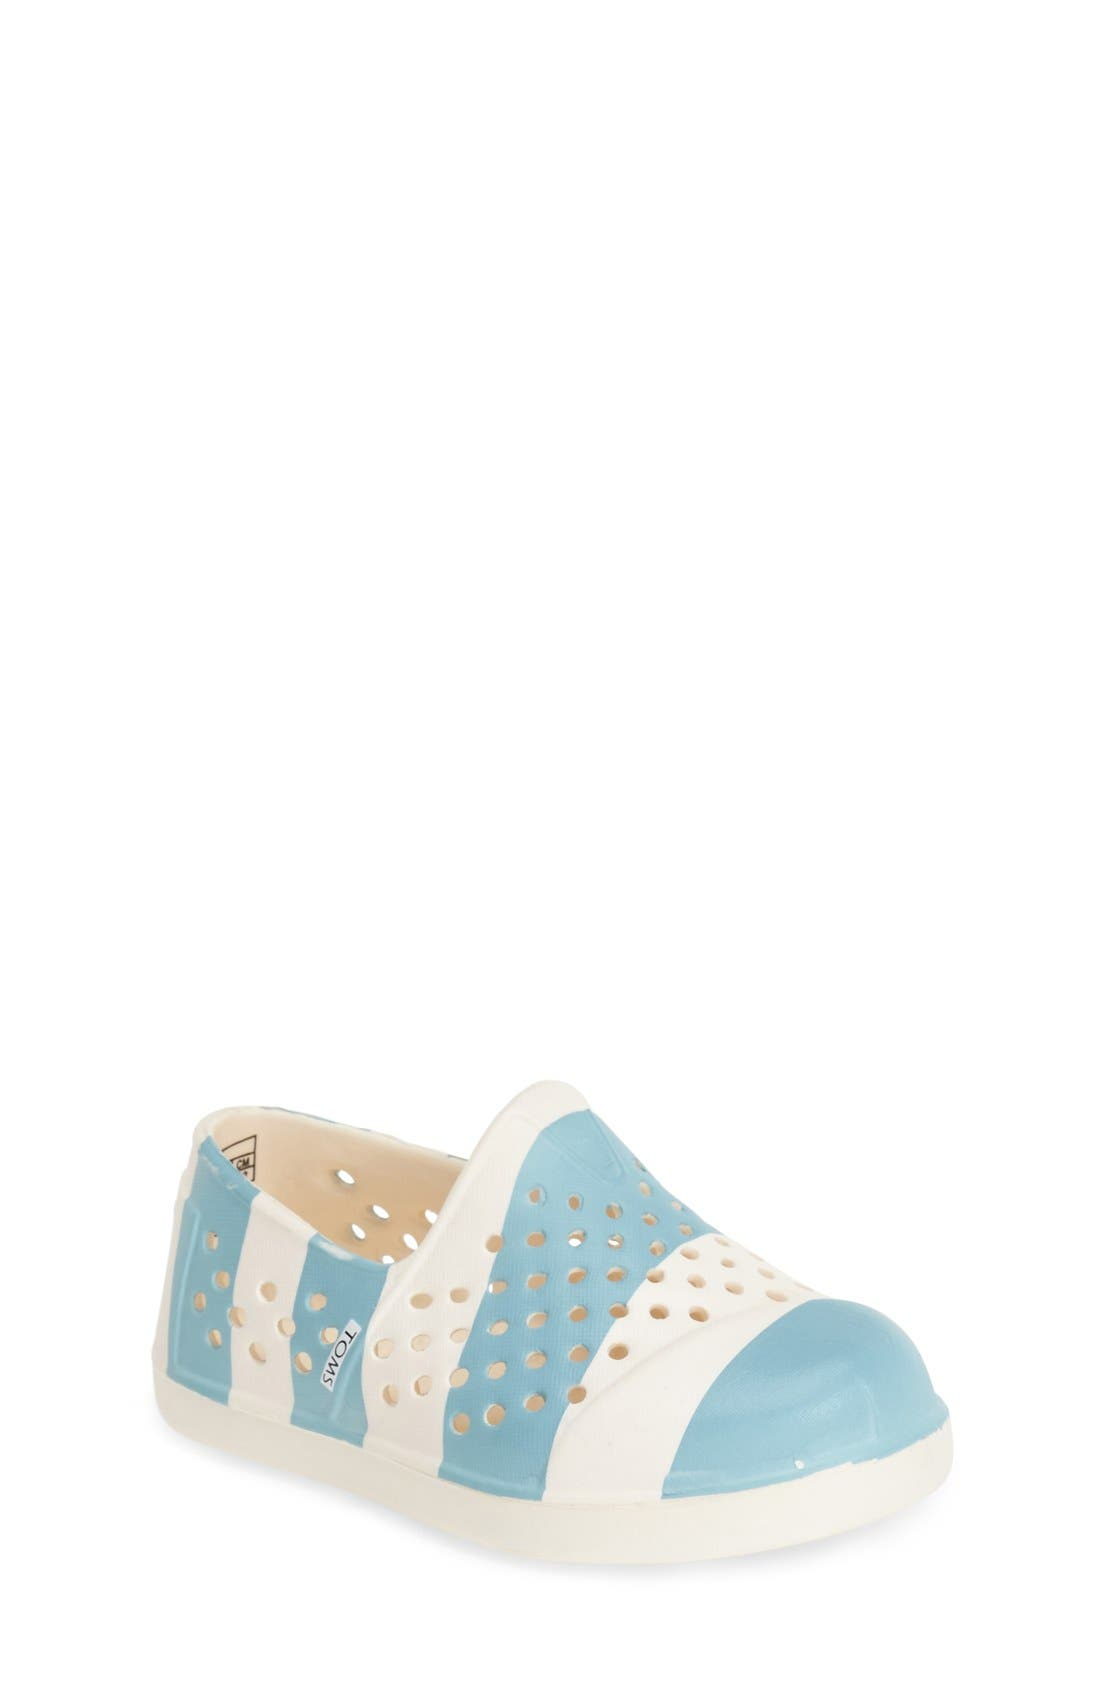 Alternate Image 1 Selected - TOMS 'Romper - Tiny' Perforated Water Friendly Slip-On (Walker & Toddler)